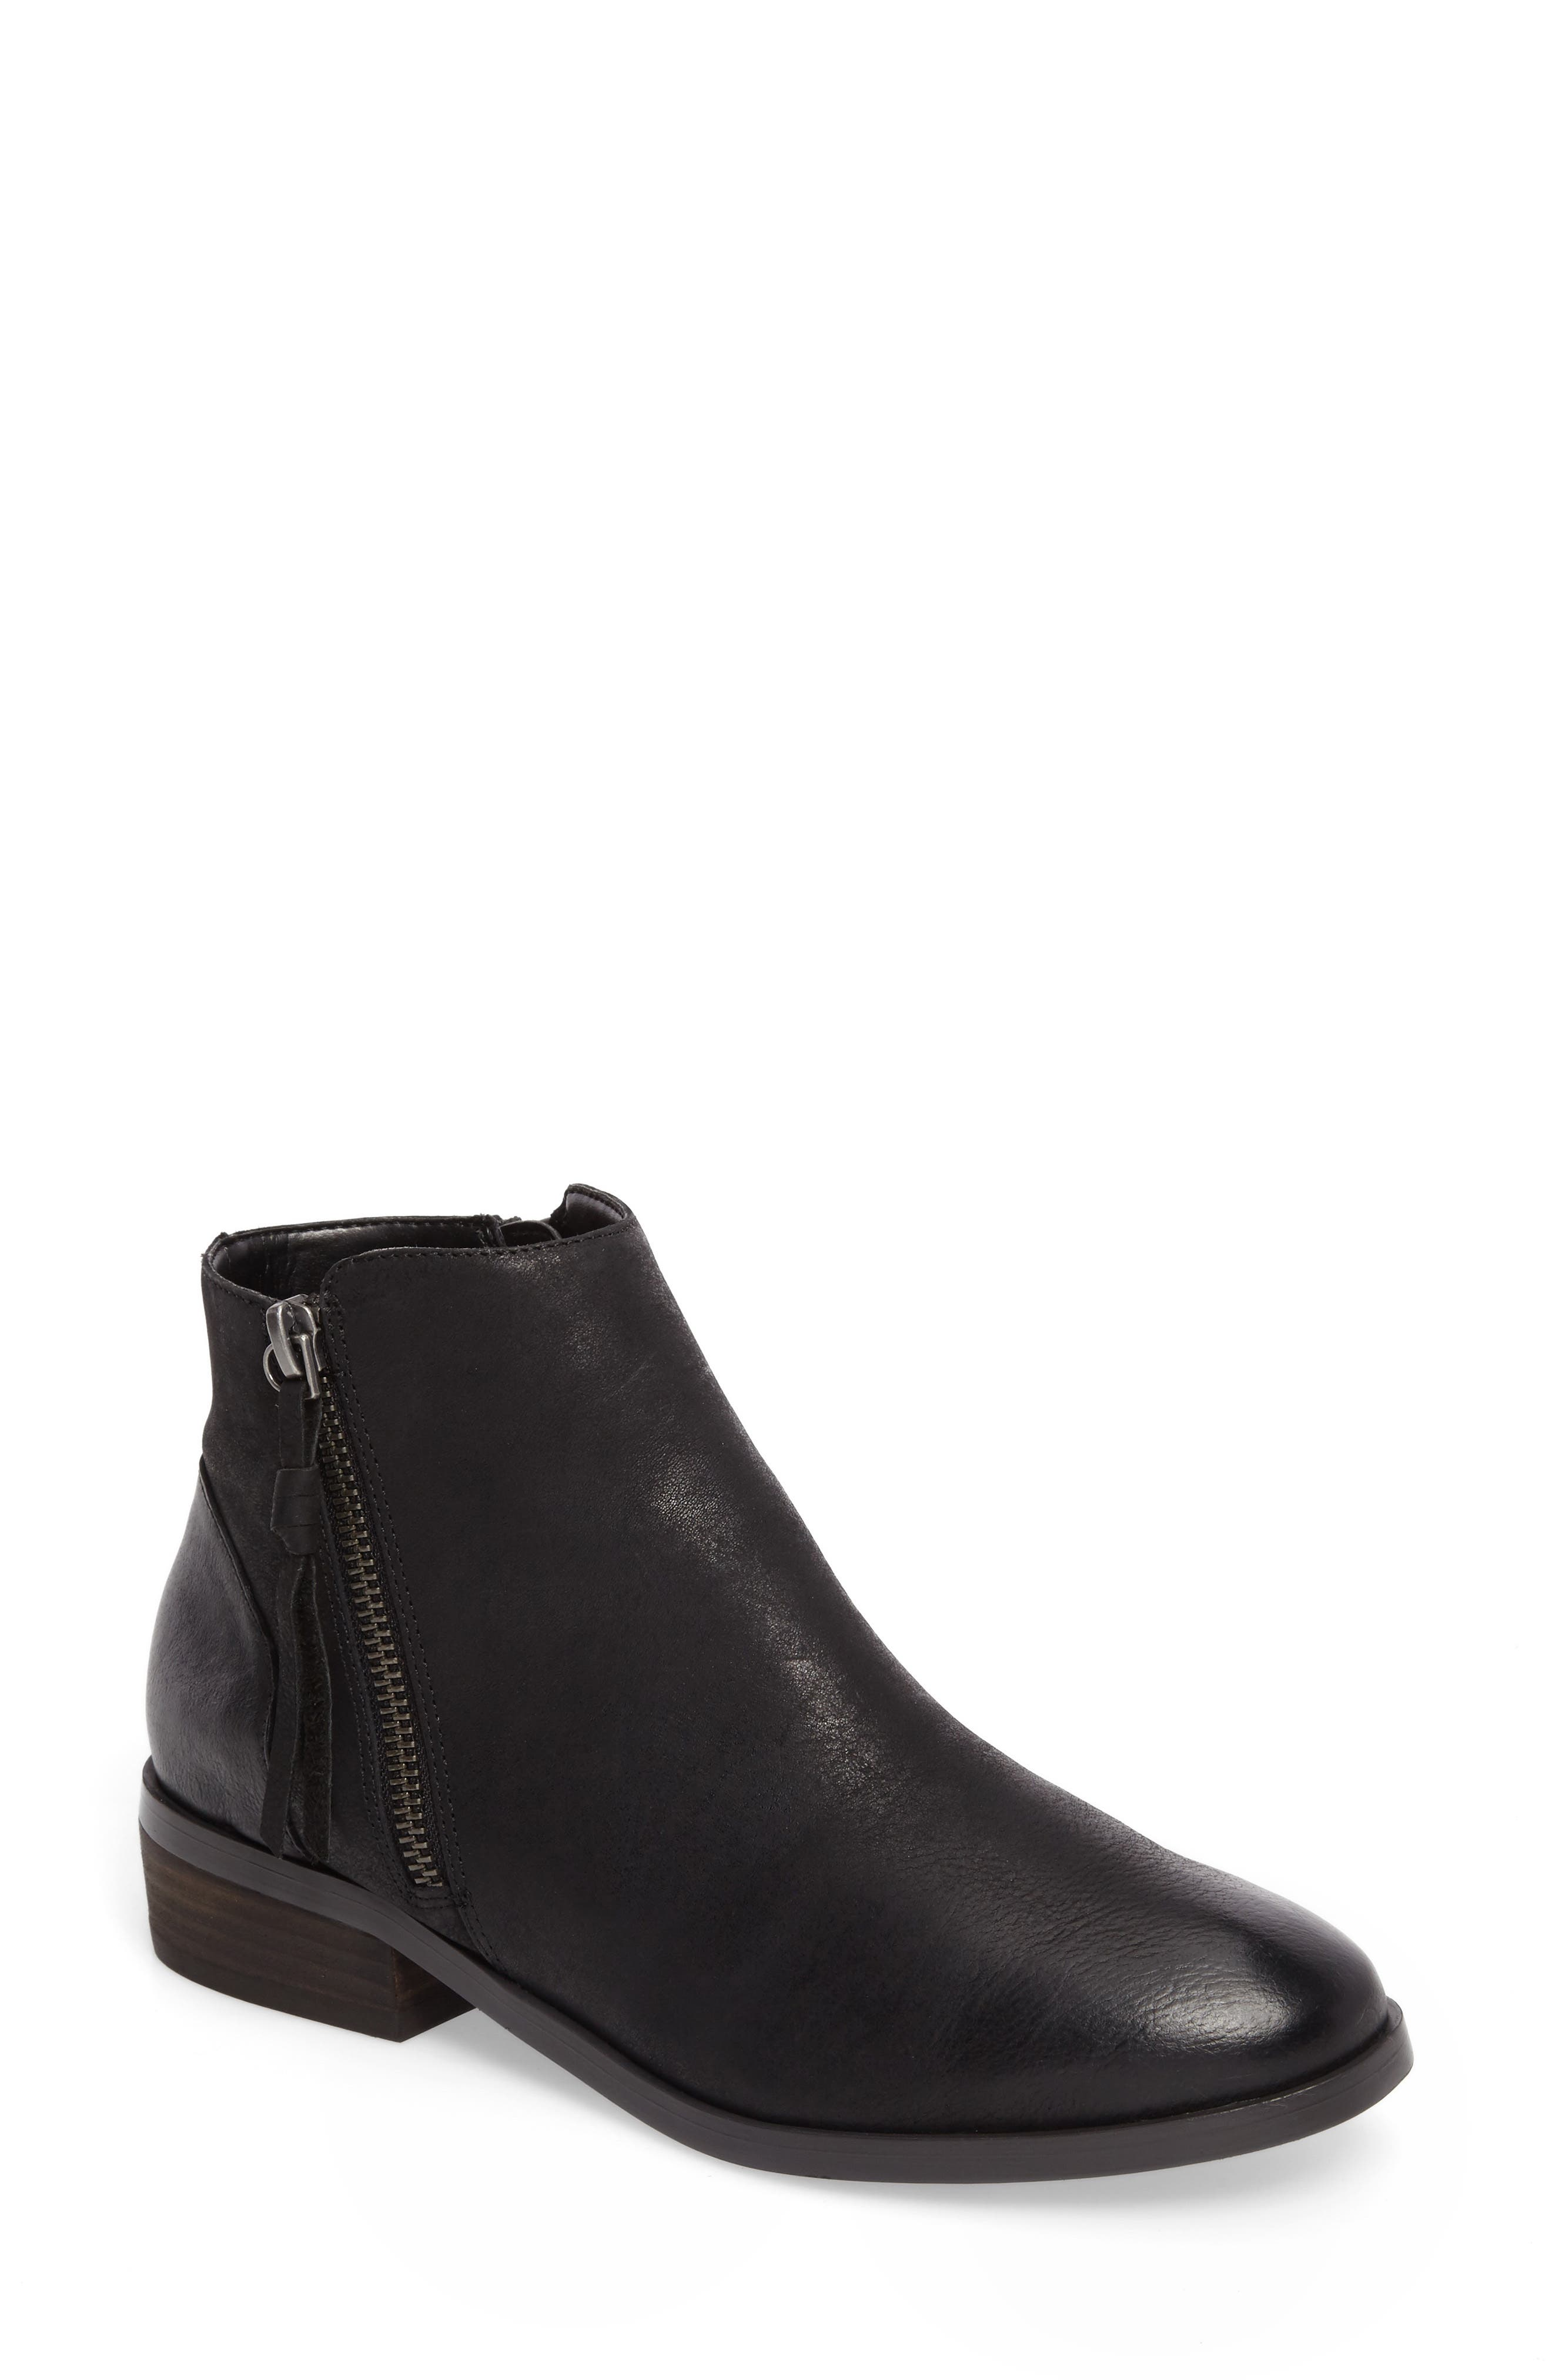 Abbott Bootie,                             Main thumbnail 1, color,                             BLACK LEATHER